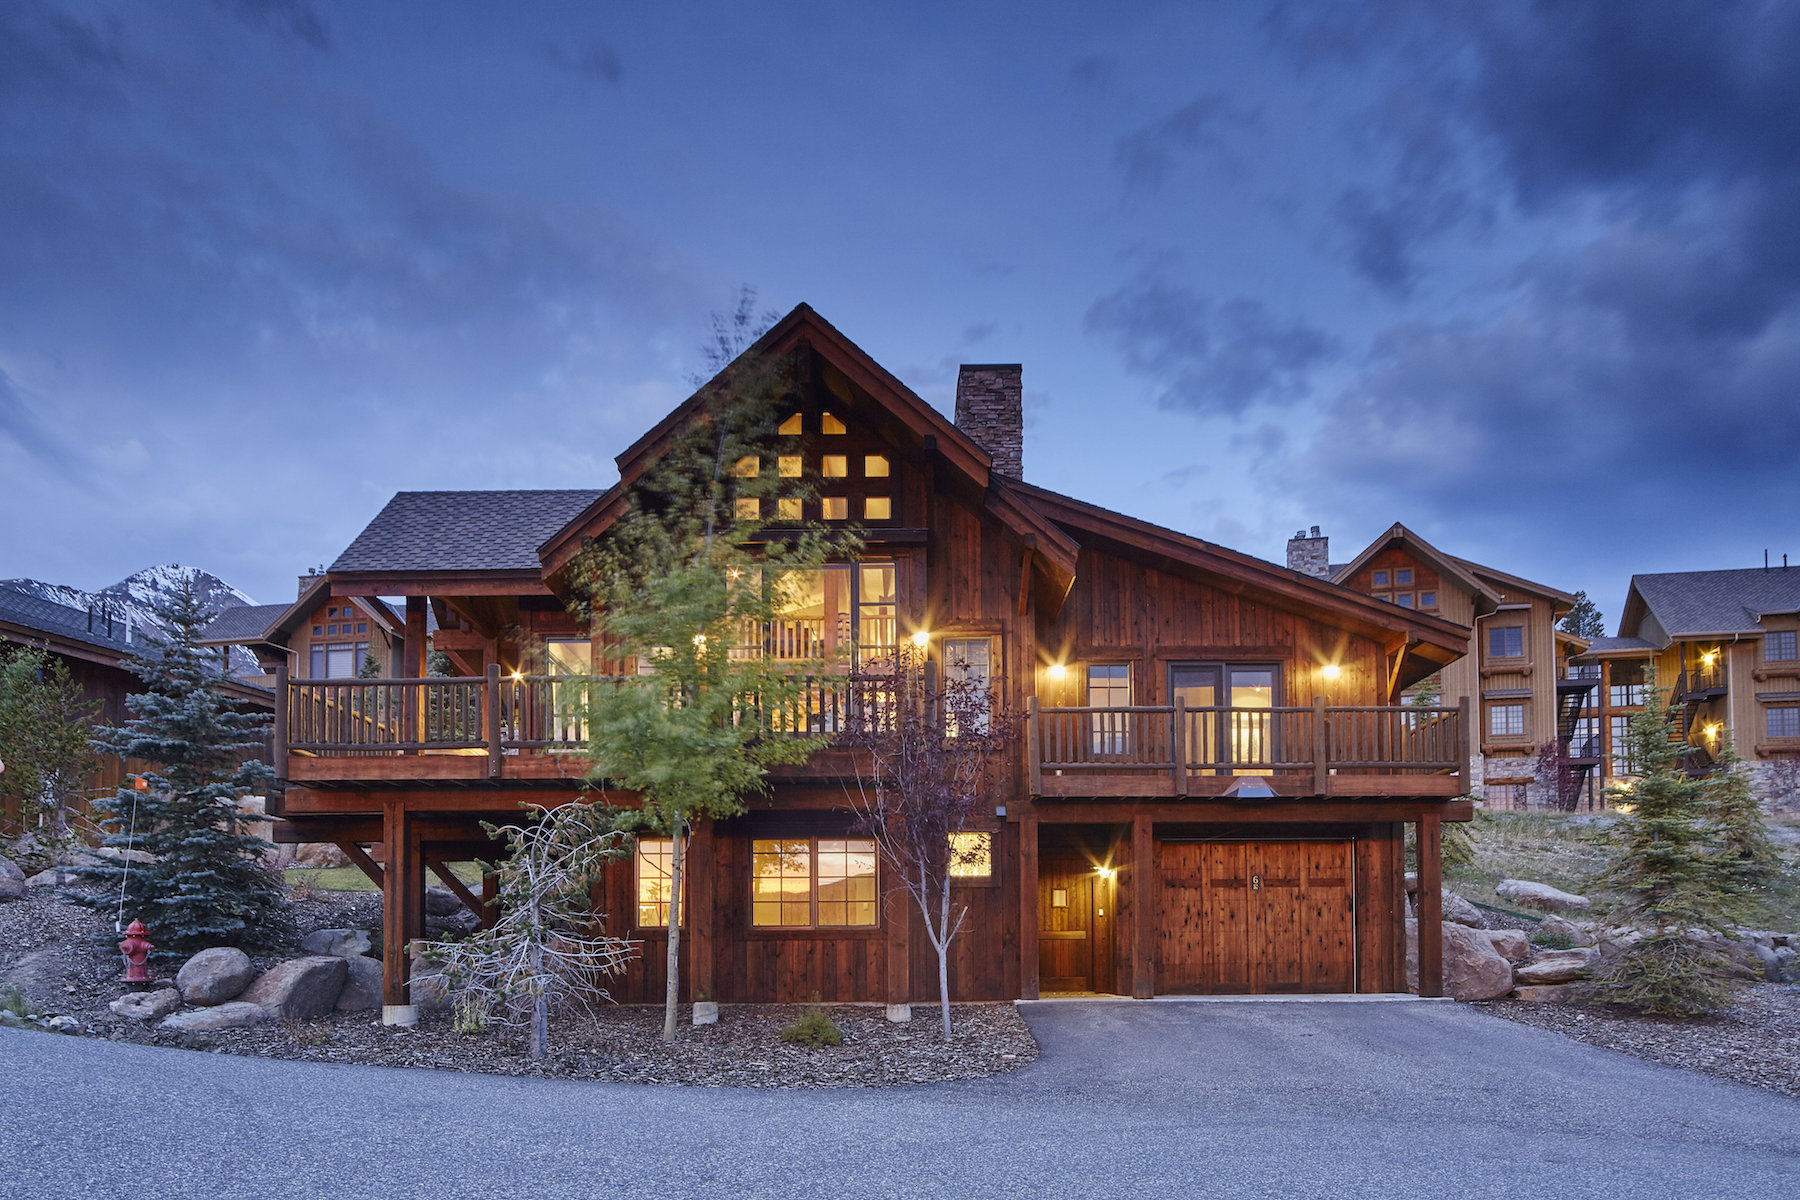 Casa Unifamiliar por un Venta en Ski-in Ski-out Chalet 6 Silver Star Way, Alpine Meadows Chalet #72 Big Sky, Montana 59716 Estados Unidos